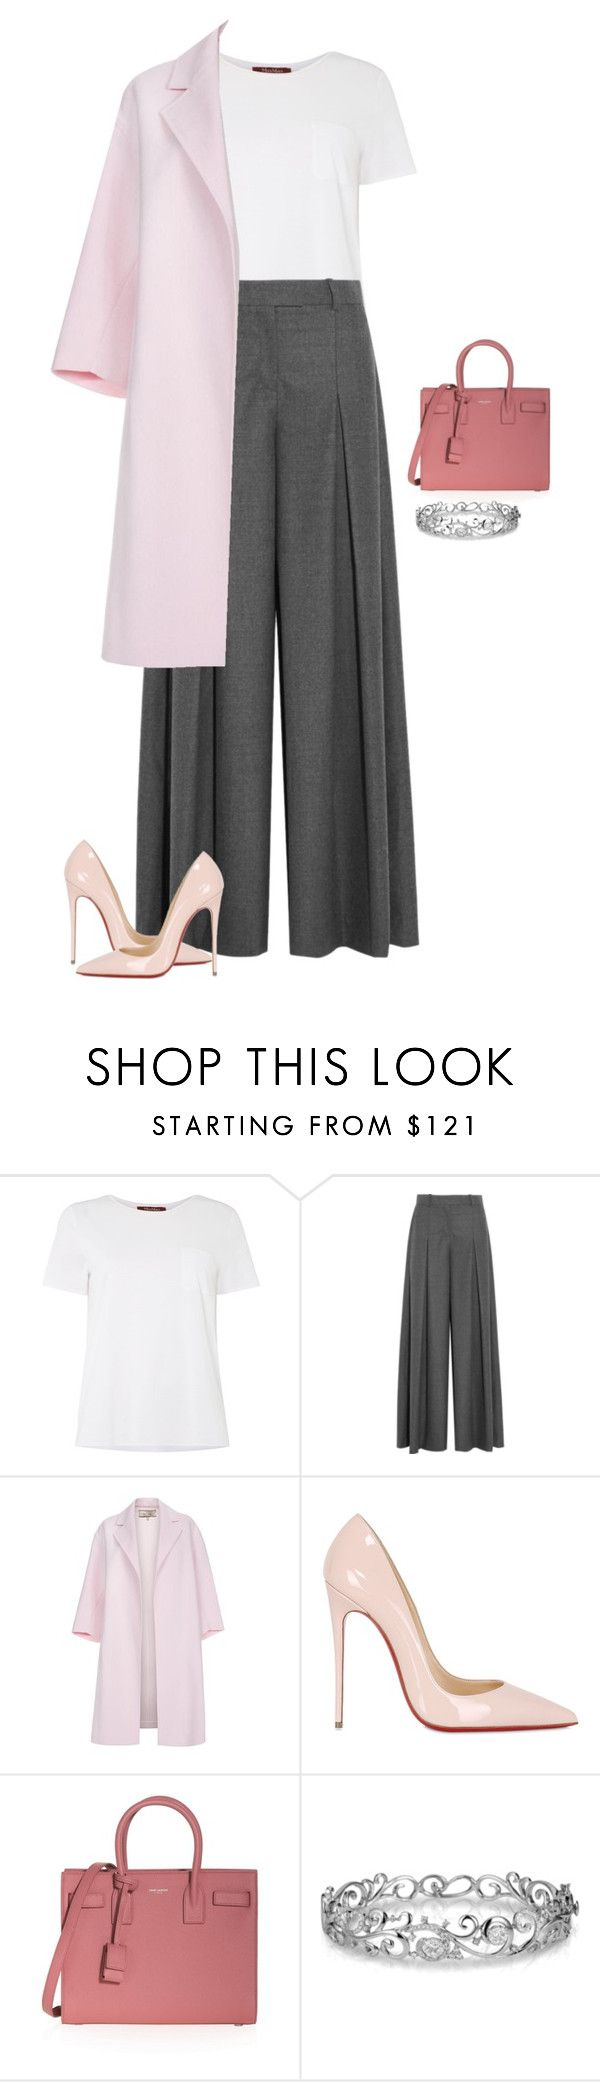 """""""Untitled #1670"""" by quaybrooks on Polyvore featuring MaxMara, J.Crew, Paul Smith, Christian Louboutin, Yves Saint Laurent, Effy Jewelry, women's clothing, women, female and woman"""